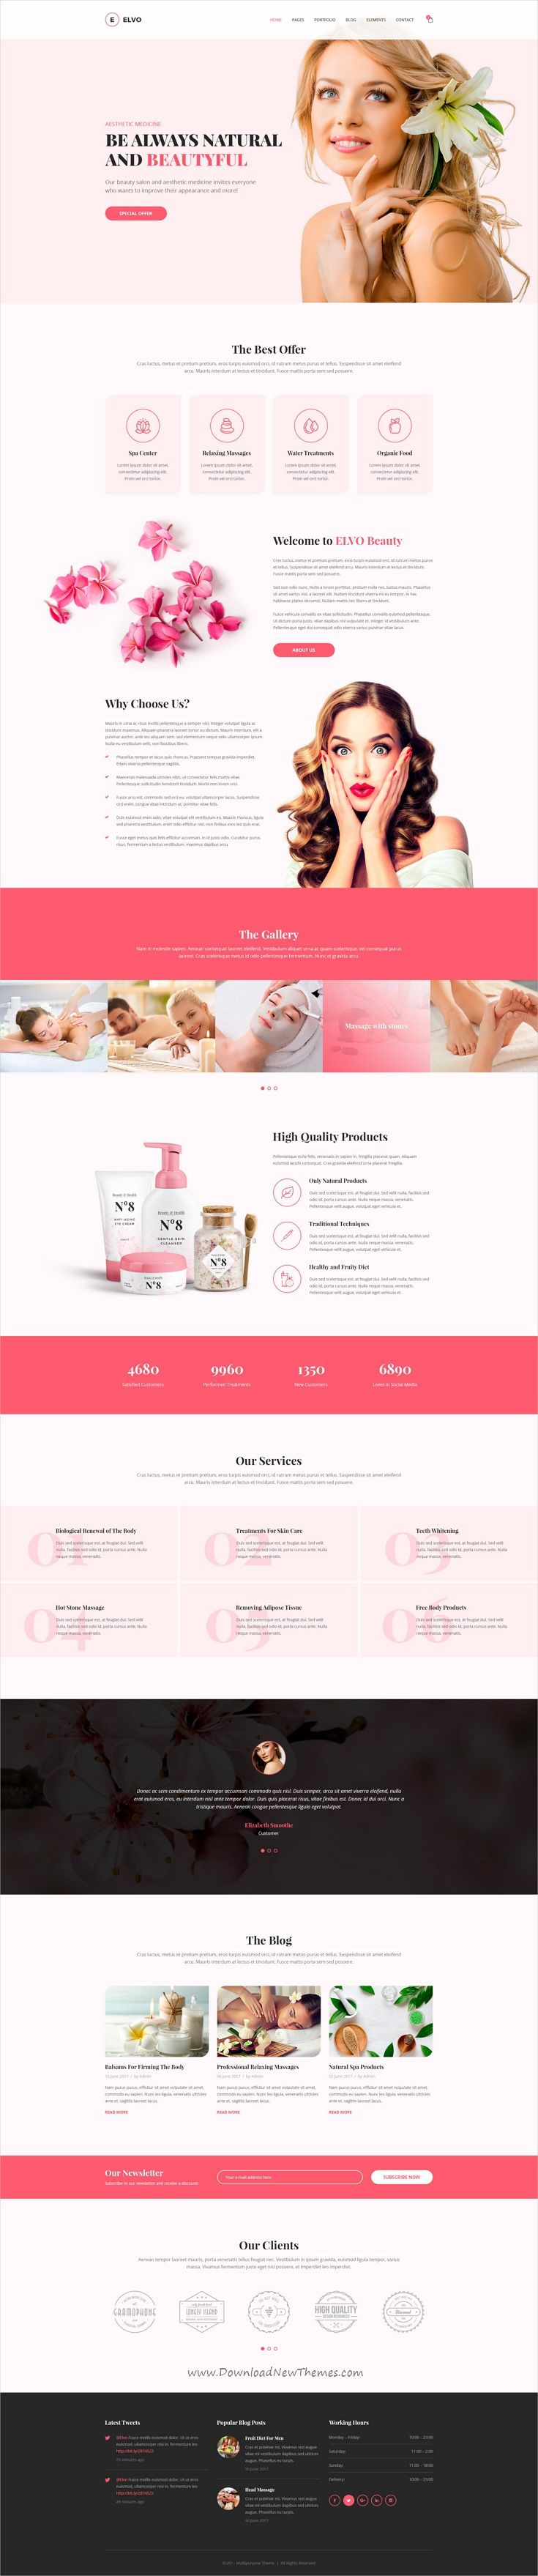 Elvo is clean and modern design multipurpose PSD template for #spa and #wellness centers website with 20+ niche homepage layouts and 66 layered PSD pages download now..